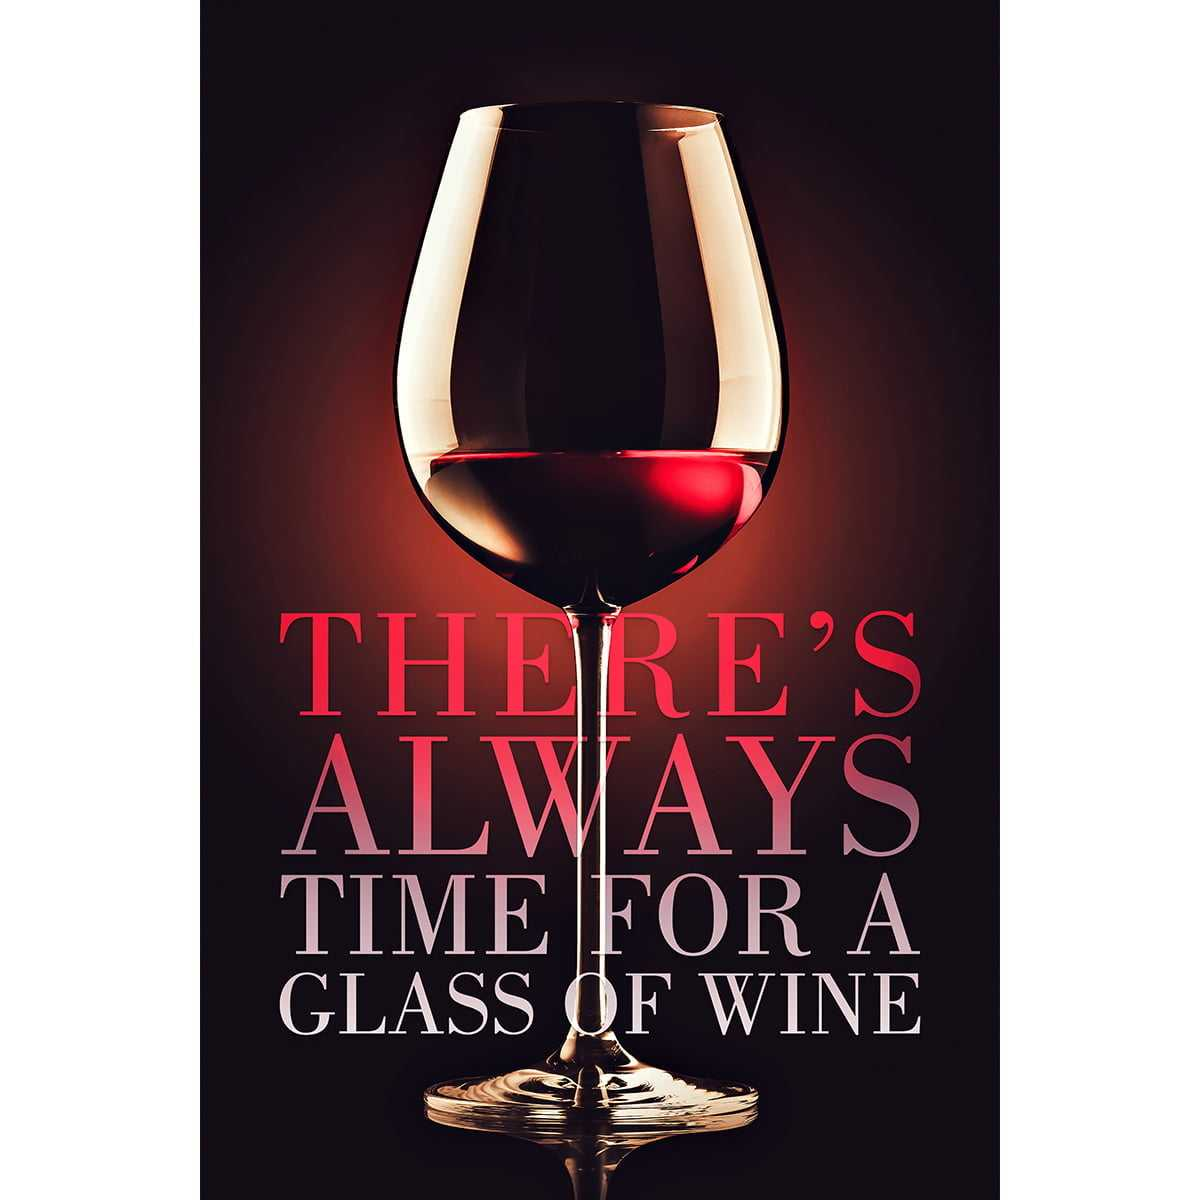 Quadro Vinho Frase There's Always Time for a Glass of Wine